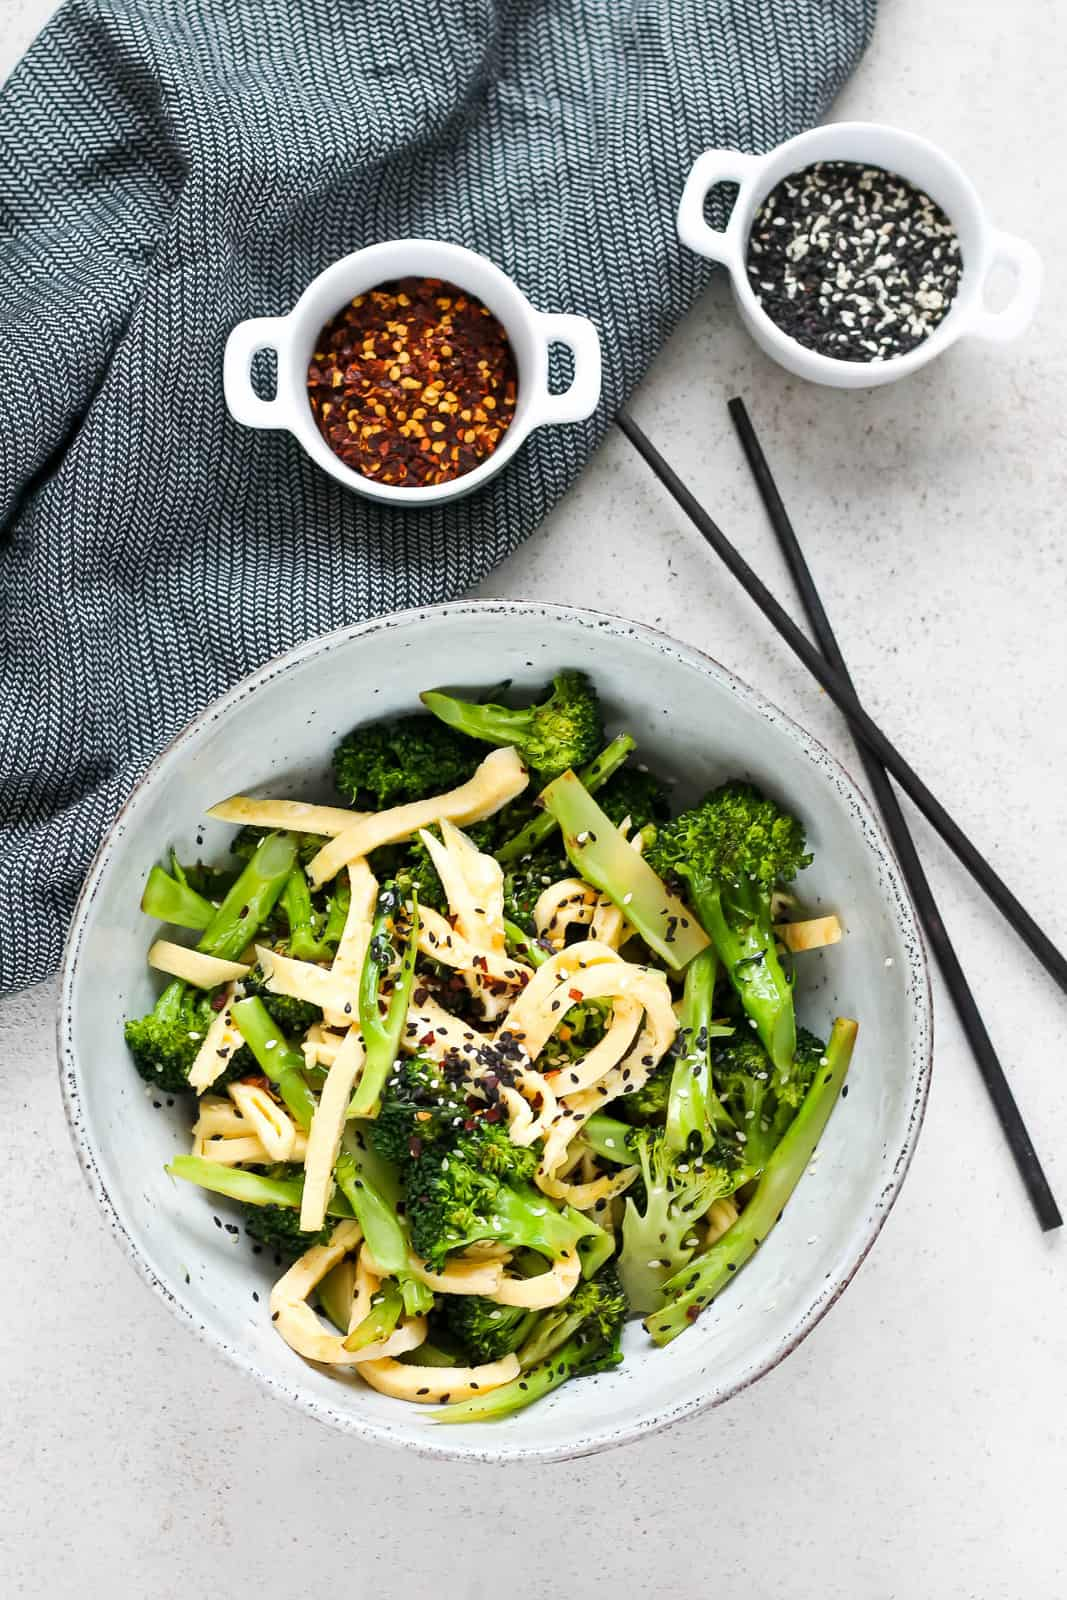 overhead photo of pan-fried broccoli tossed with egg ribbons and sprinkled with black and white sesame seeds in a blue bowl